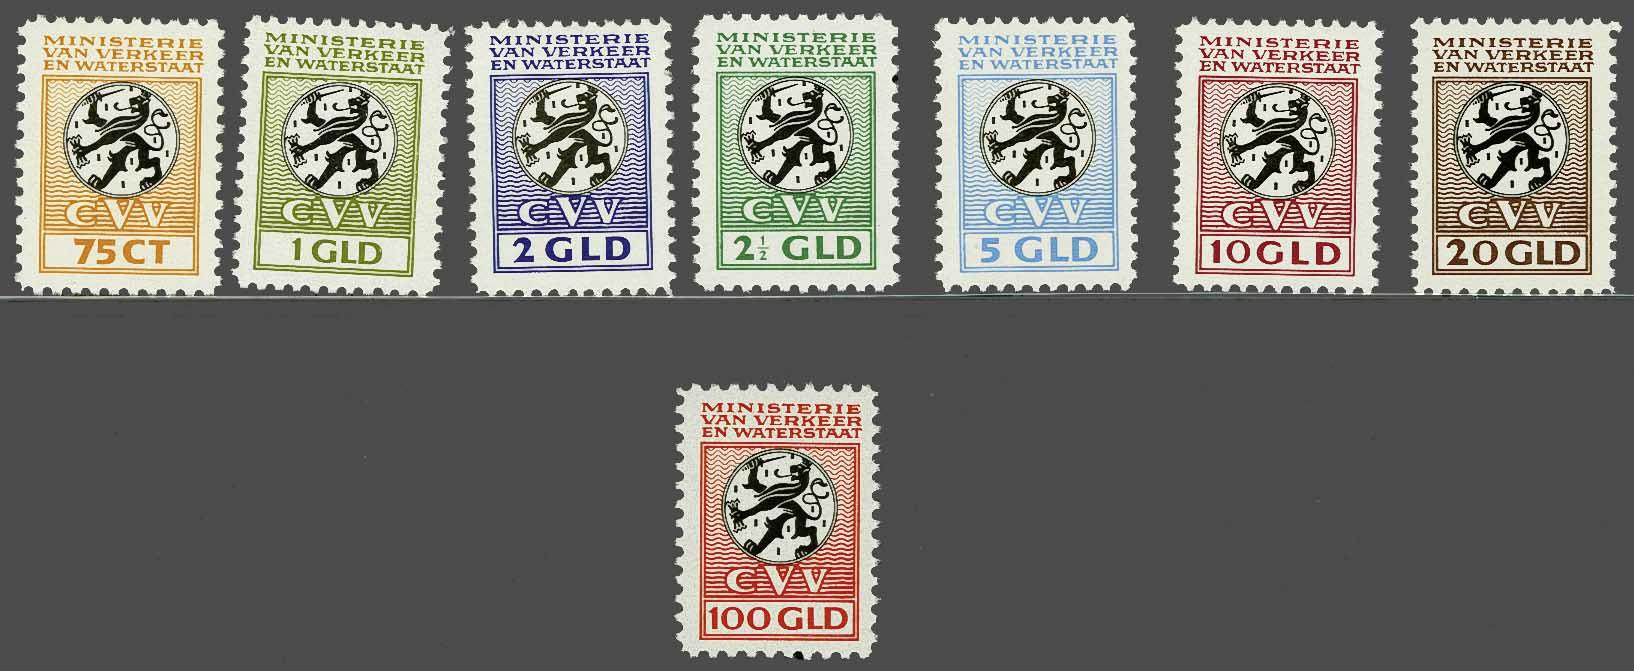 Lot 2040 - Netherlands and former colonies NL Revenue stamps -  Corinphila Veilingen Auction 245-246 Day 3 - Netherlands and former colonies - Single lots, Collections and lots, Boxes and literature